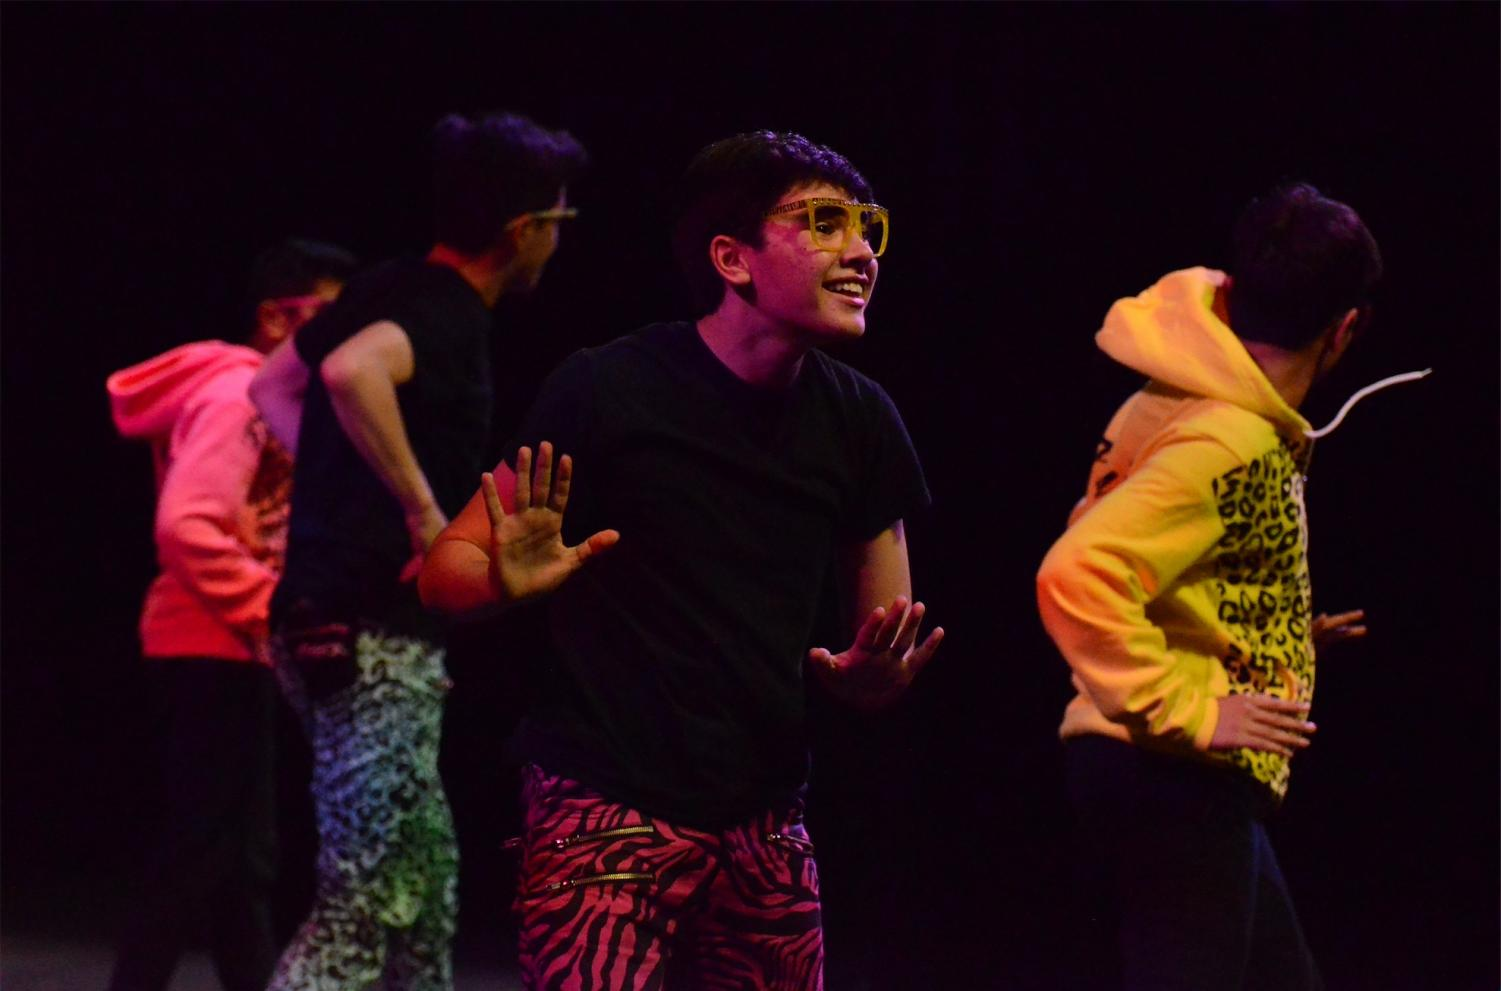 Joel Morel (11) grins at the audience as he dances in perfect coordination with his fellow members of Kinetic Krew. Kinetic Krew,  an all-boys group directed by Rachelle Haun, features dancers from 9th to 12th grade.